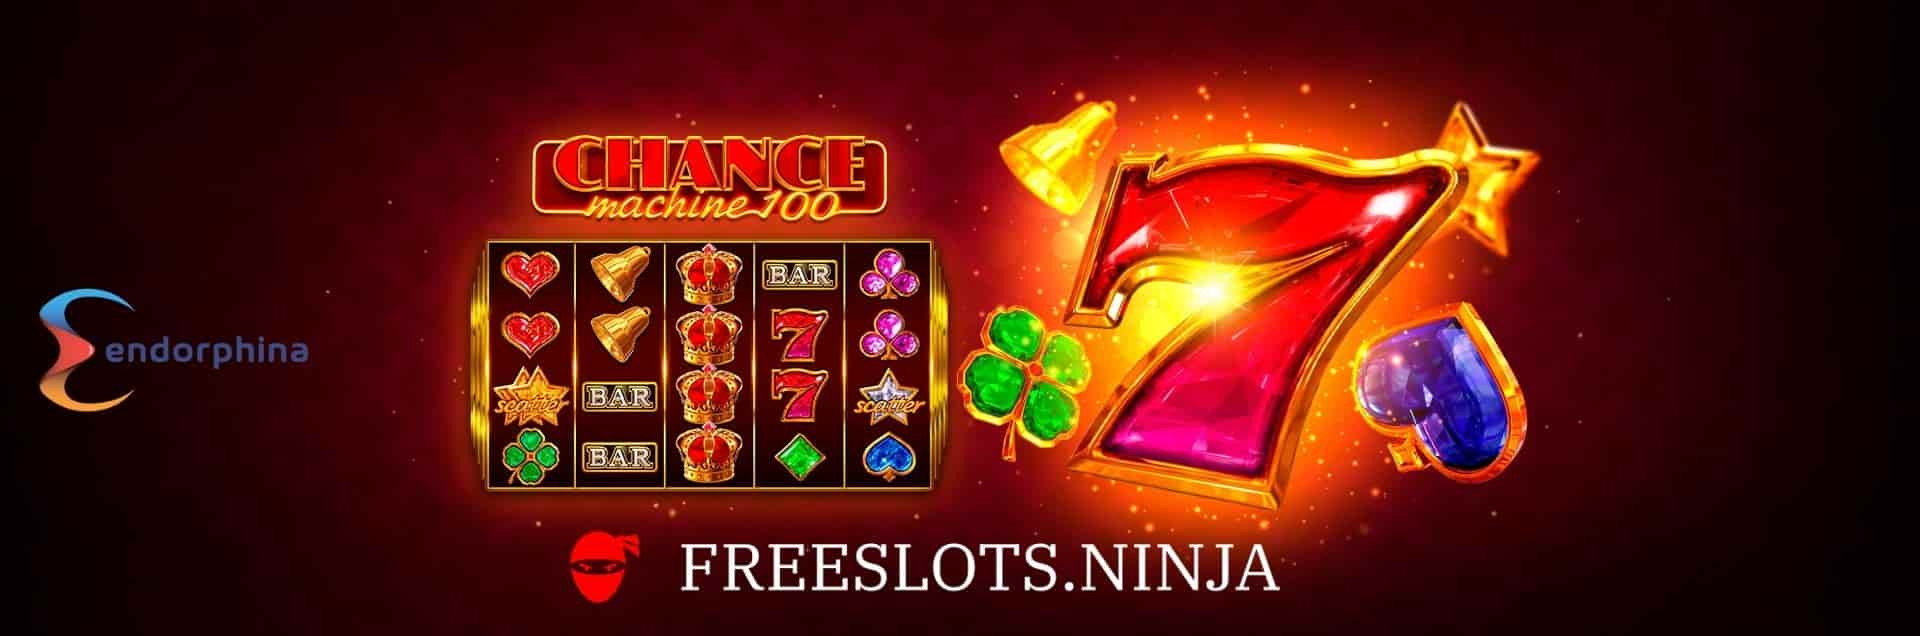 endorphina chance machine 100 slot